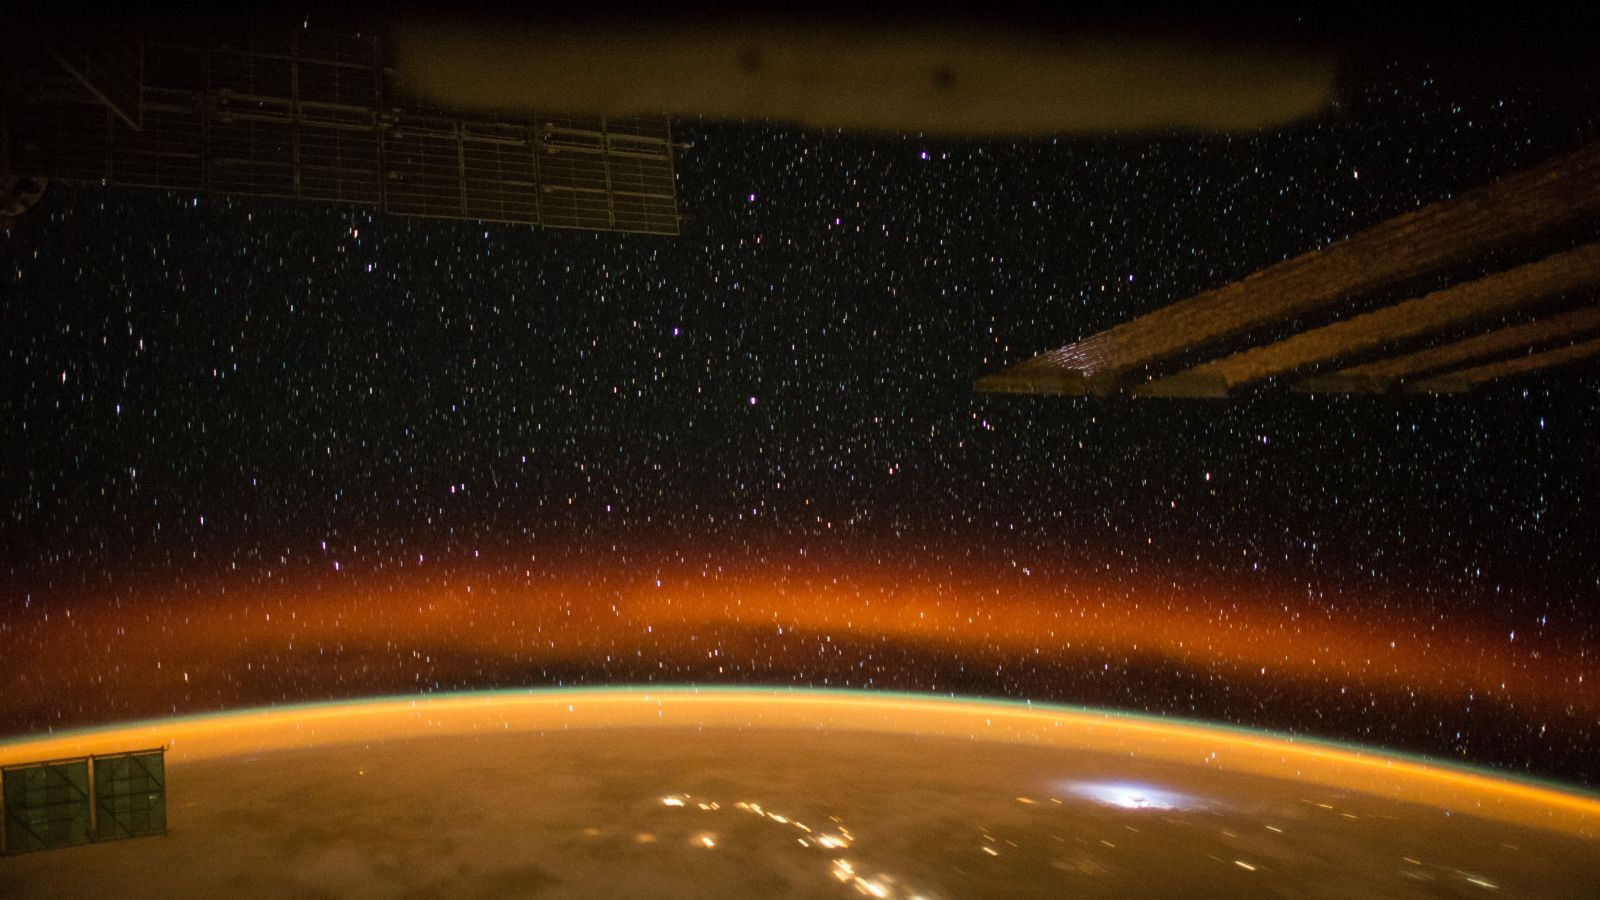 An orbital sunset as seen from the ISS. Photo Credit: NASA